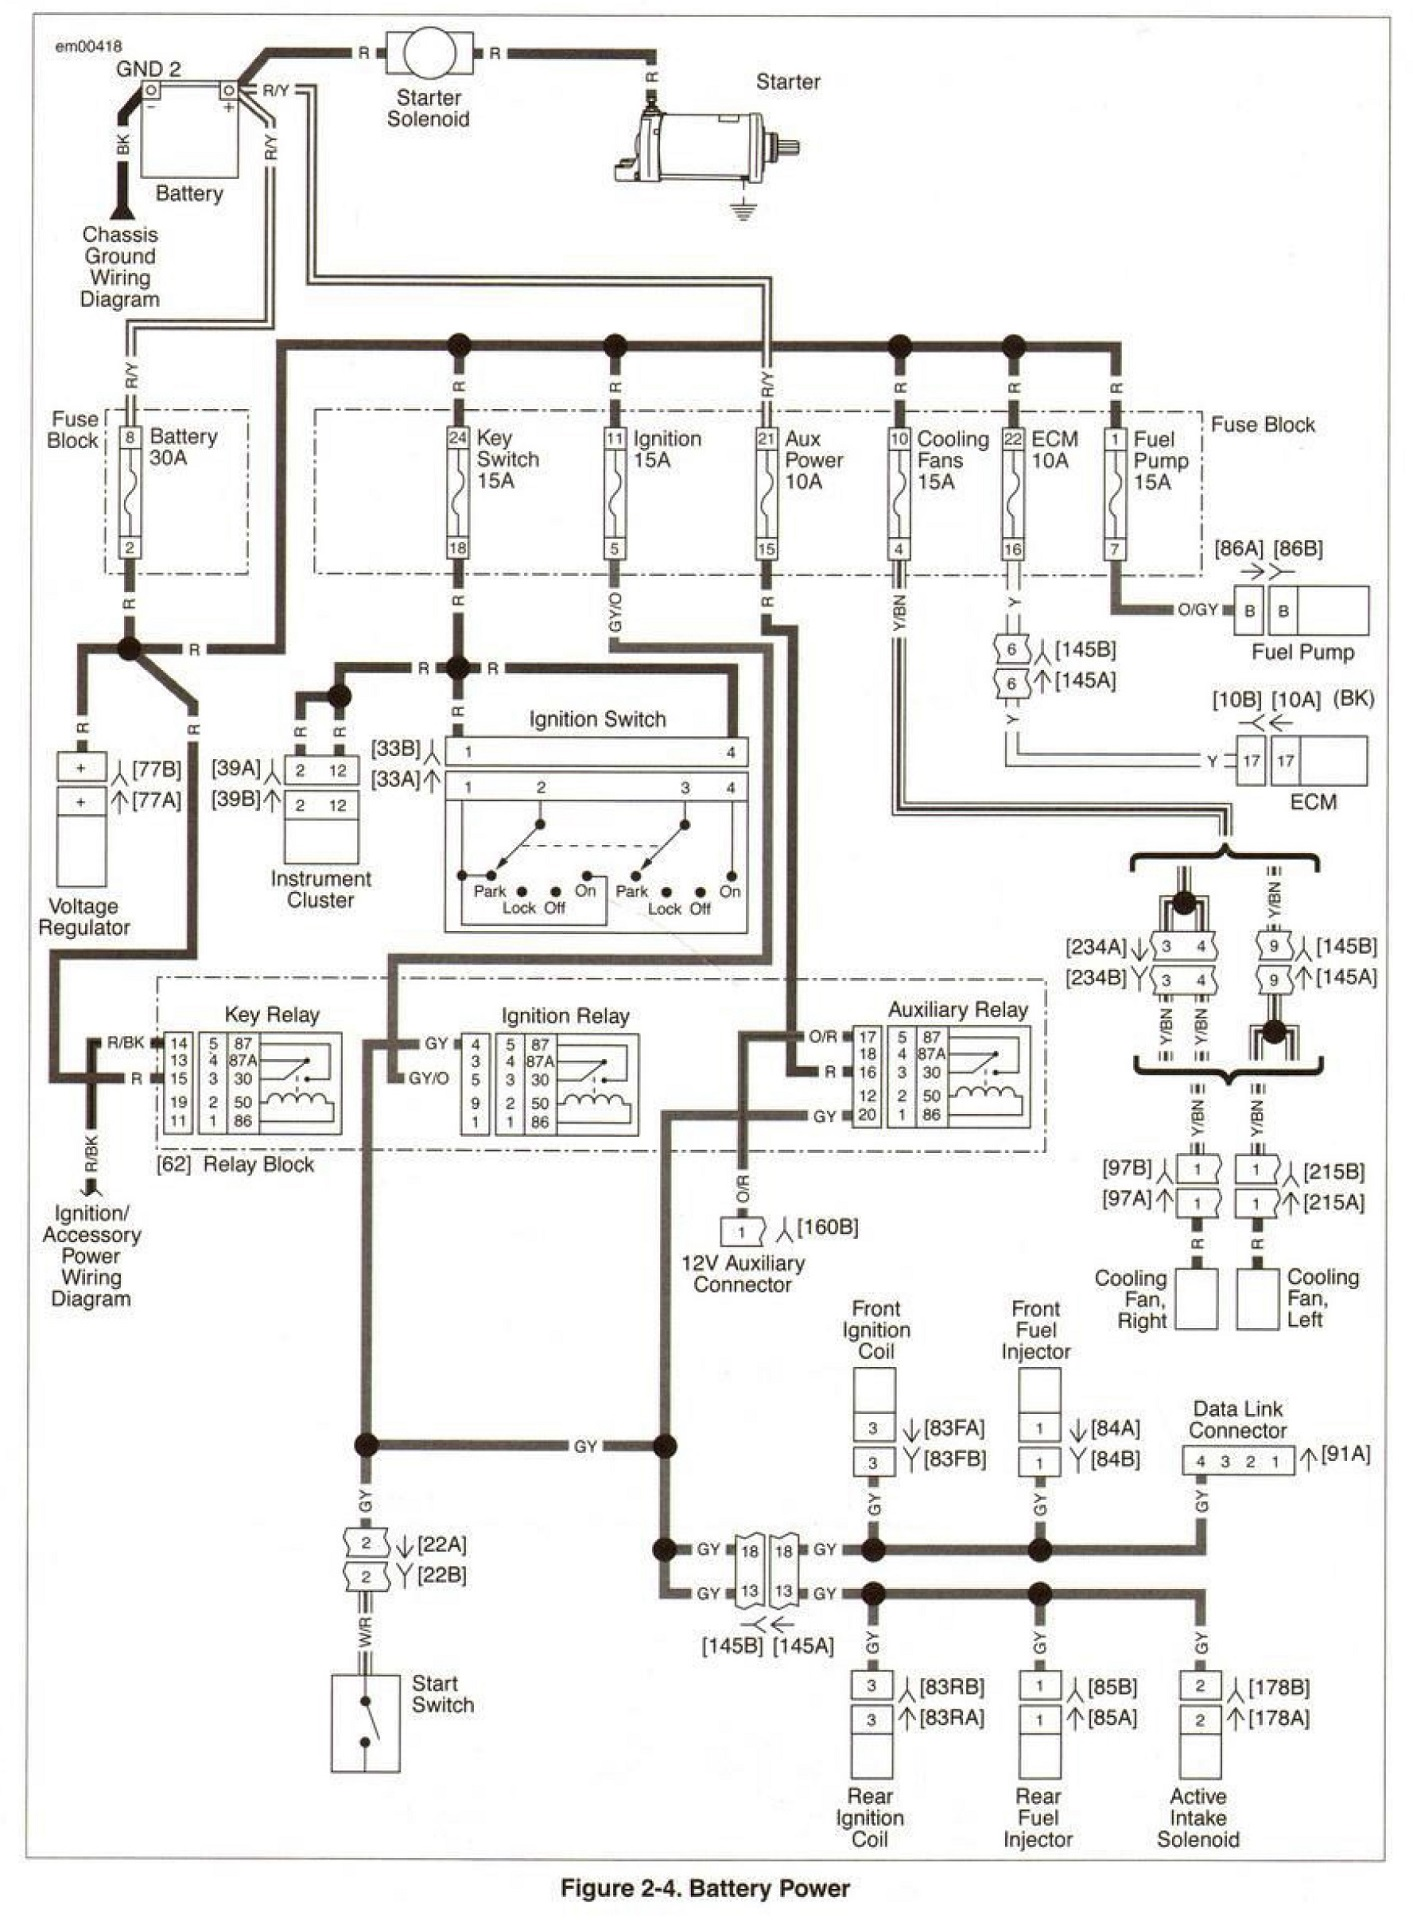 buell wiring diagram wiring diagram perf ce buell wiring diagram wiring diagram info buell xb12 wiring diagram 1998 buell wiring diagram wiring diagram